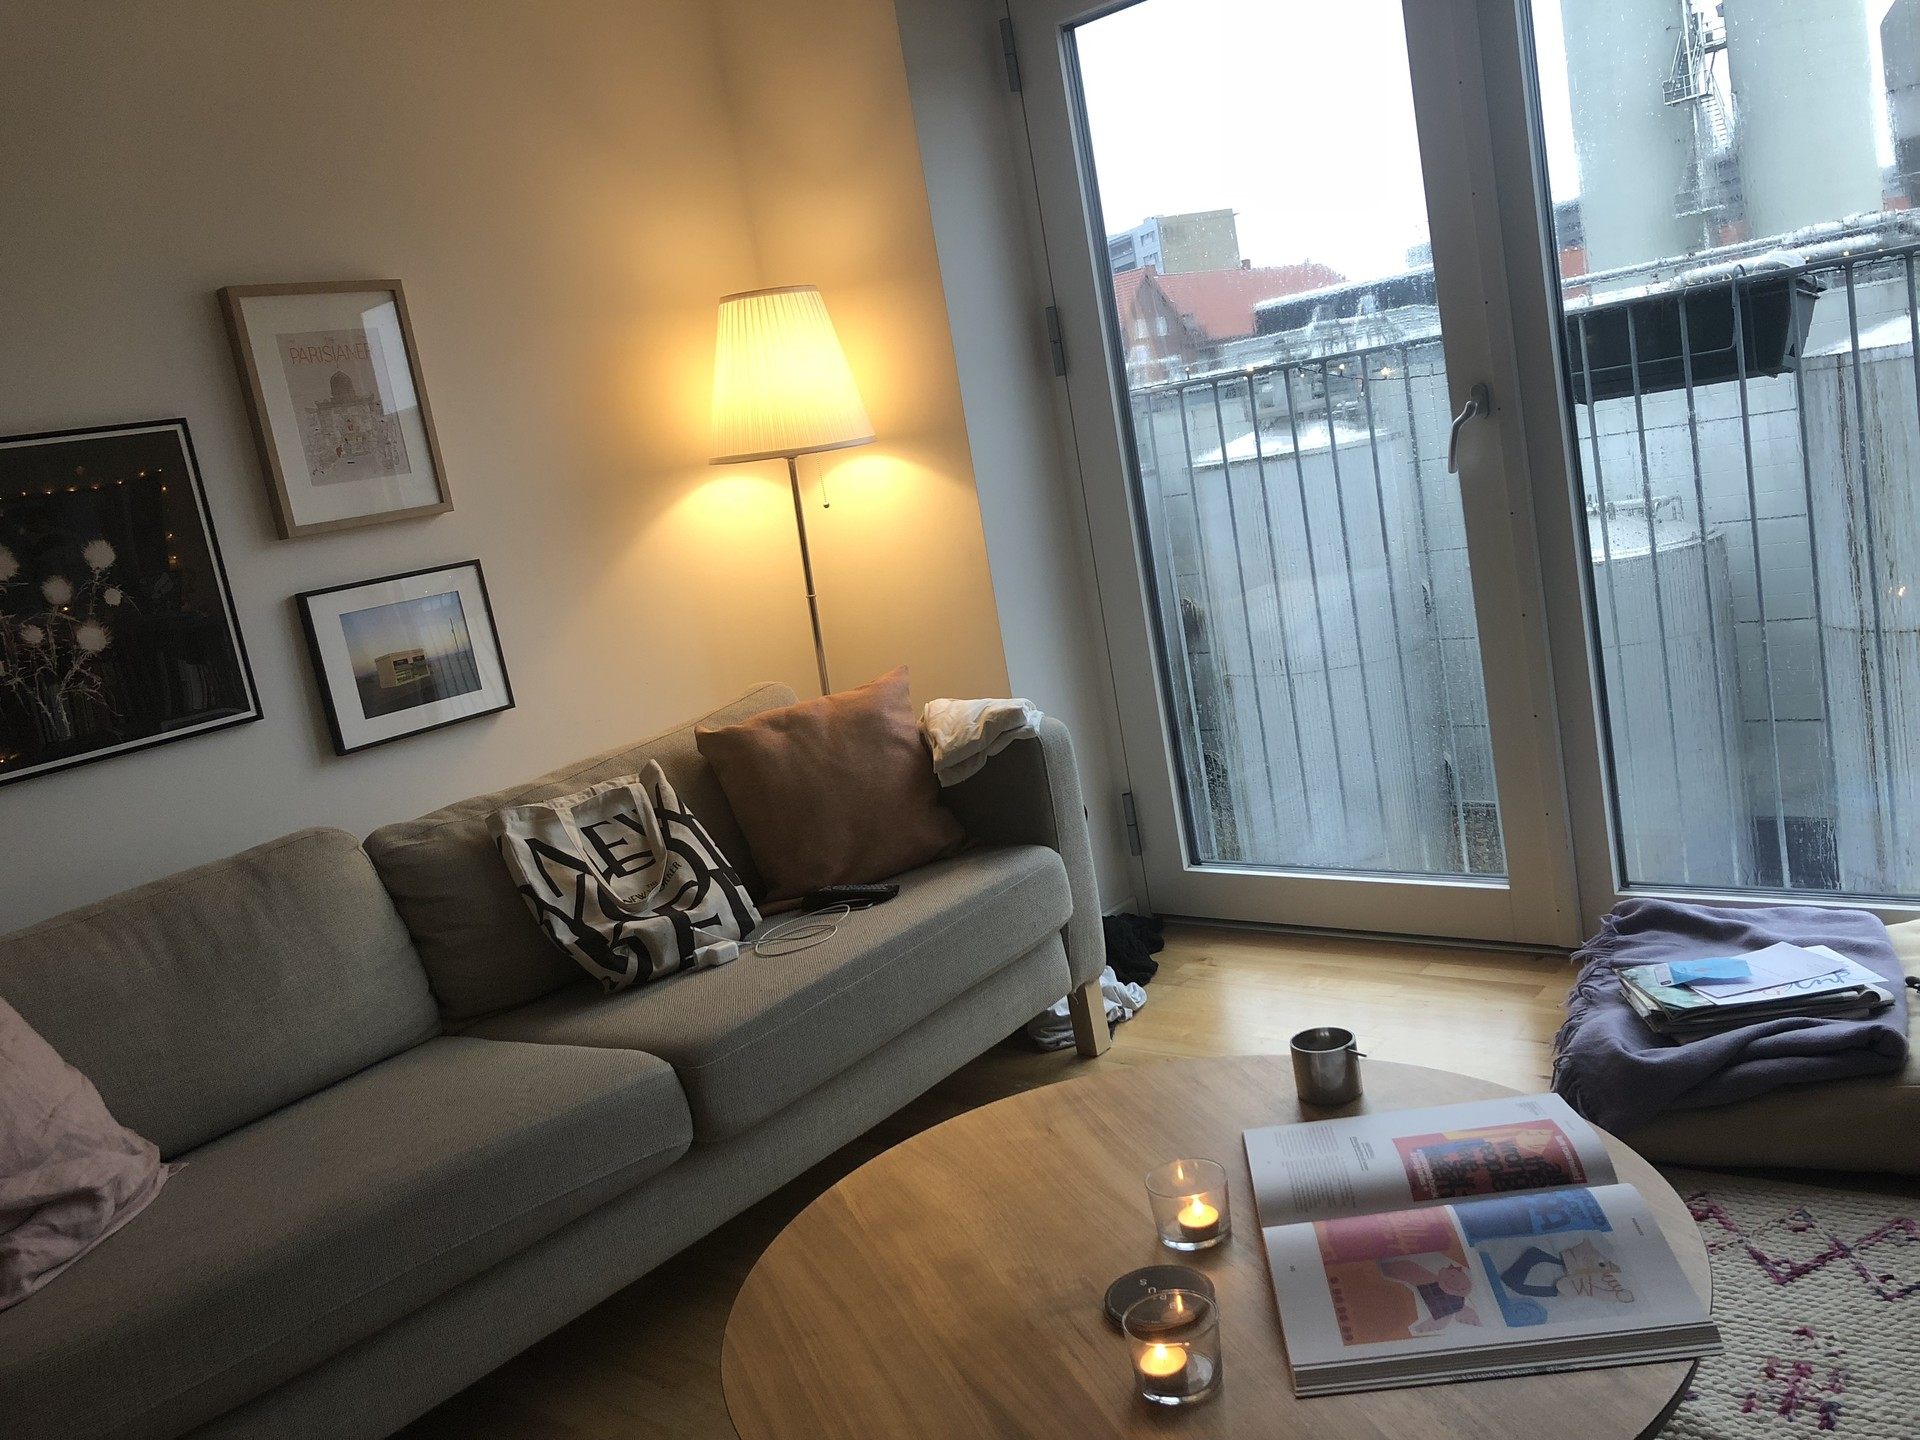 1 Bedroom Flat To Rent Cheap Search Your Favorite Image